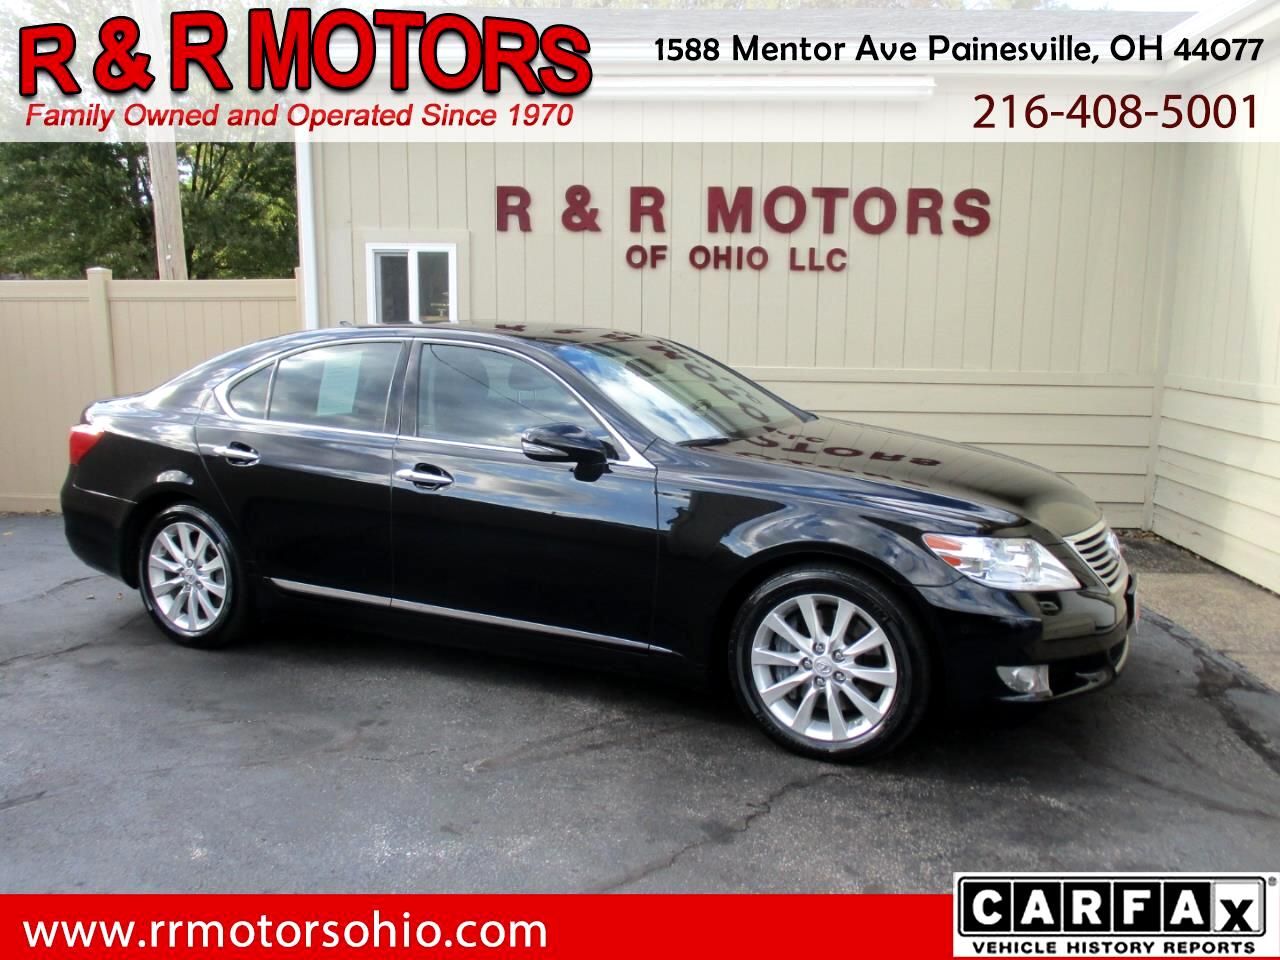 Lexus LS 460 Luxury Sedan AWD 2011